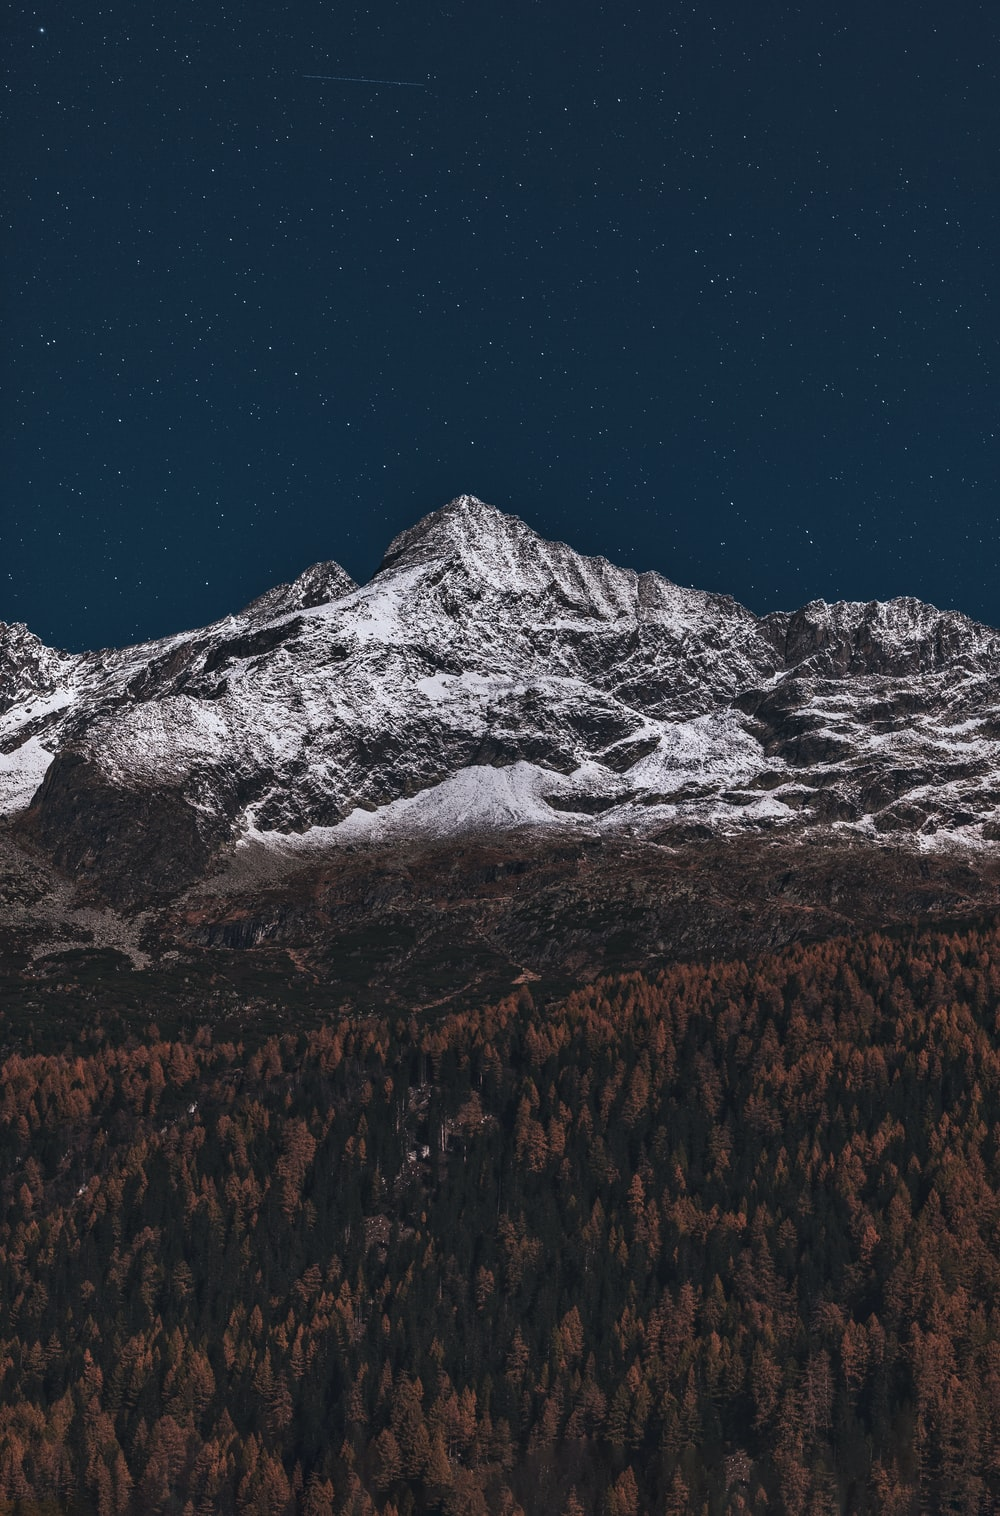 ice-capped mountain at night